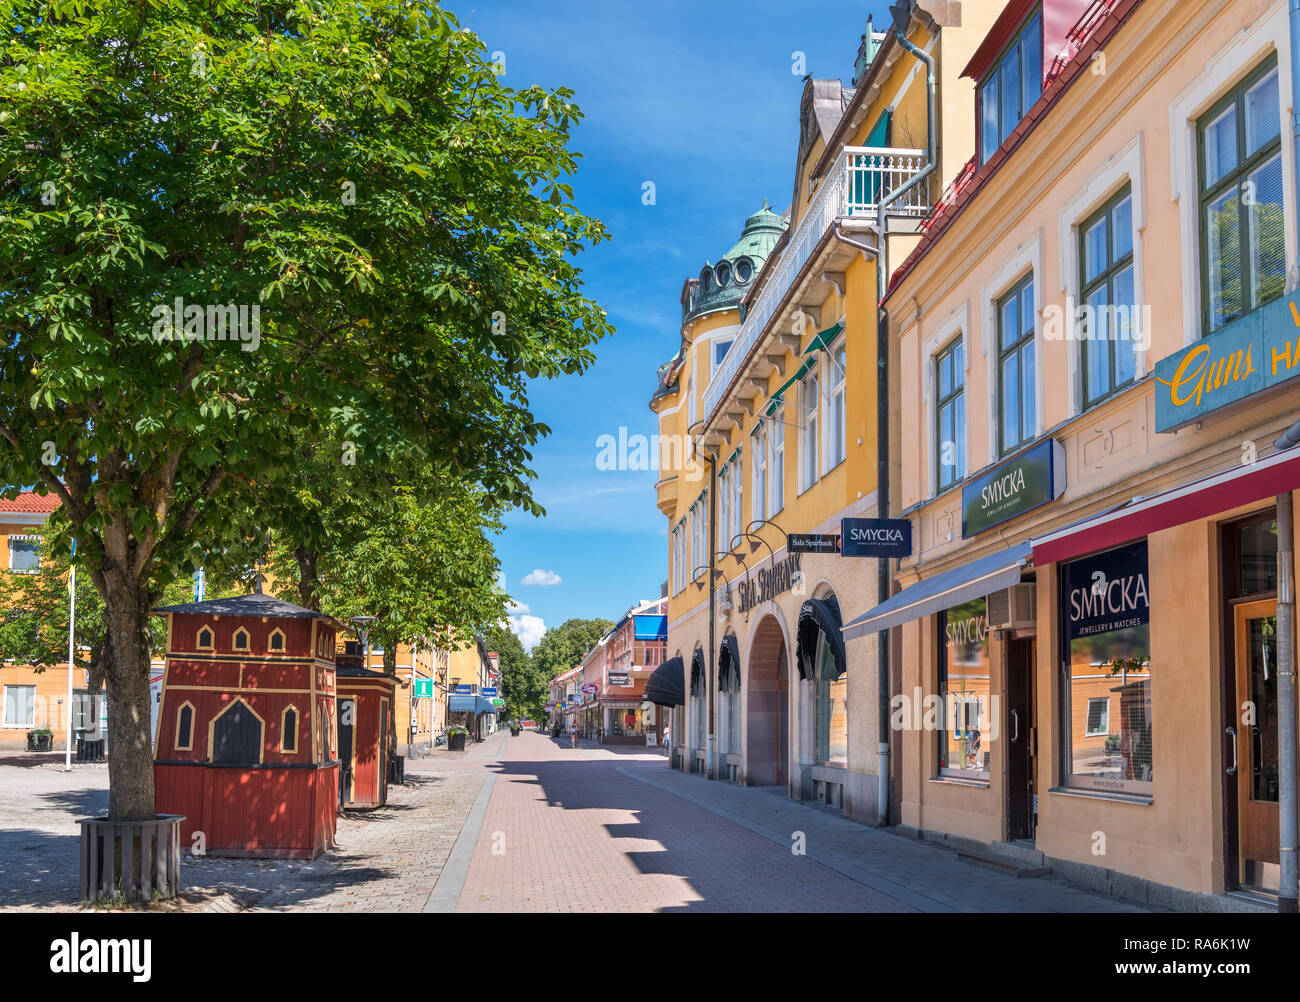 The Main Square (Stora Torget), Sala, Västmanland, Sweden - Stock Image